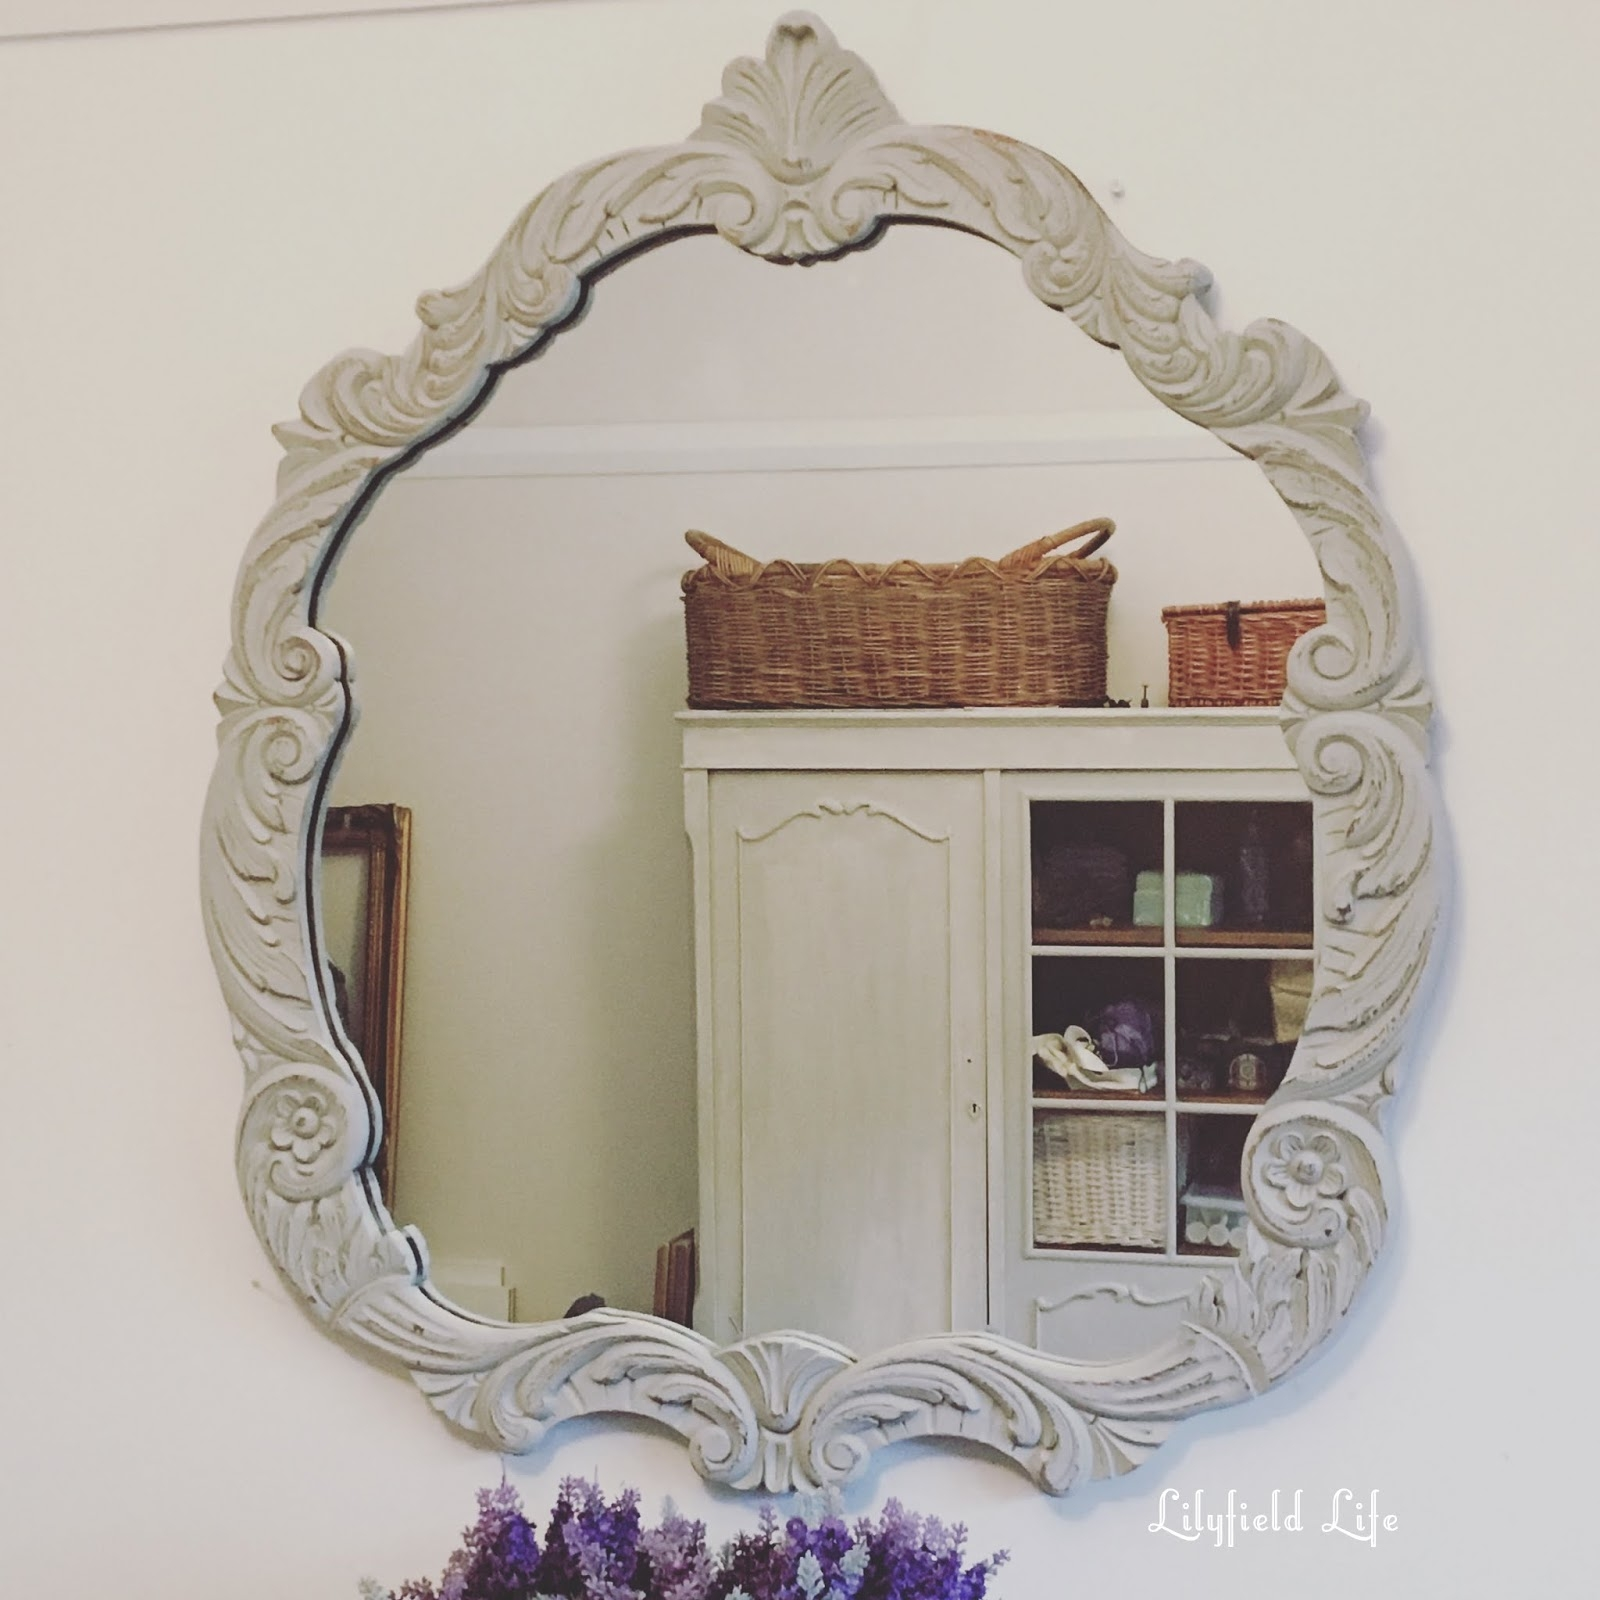 Lilyfield Life Gorgeous Painted Vintage Mirrors Within Vintage Mirrors (Image 9 of 15)